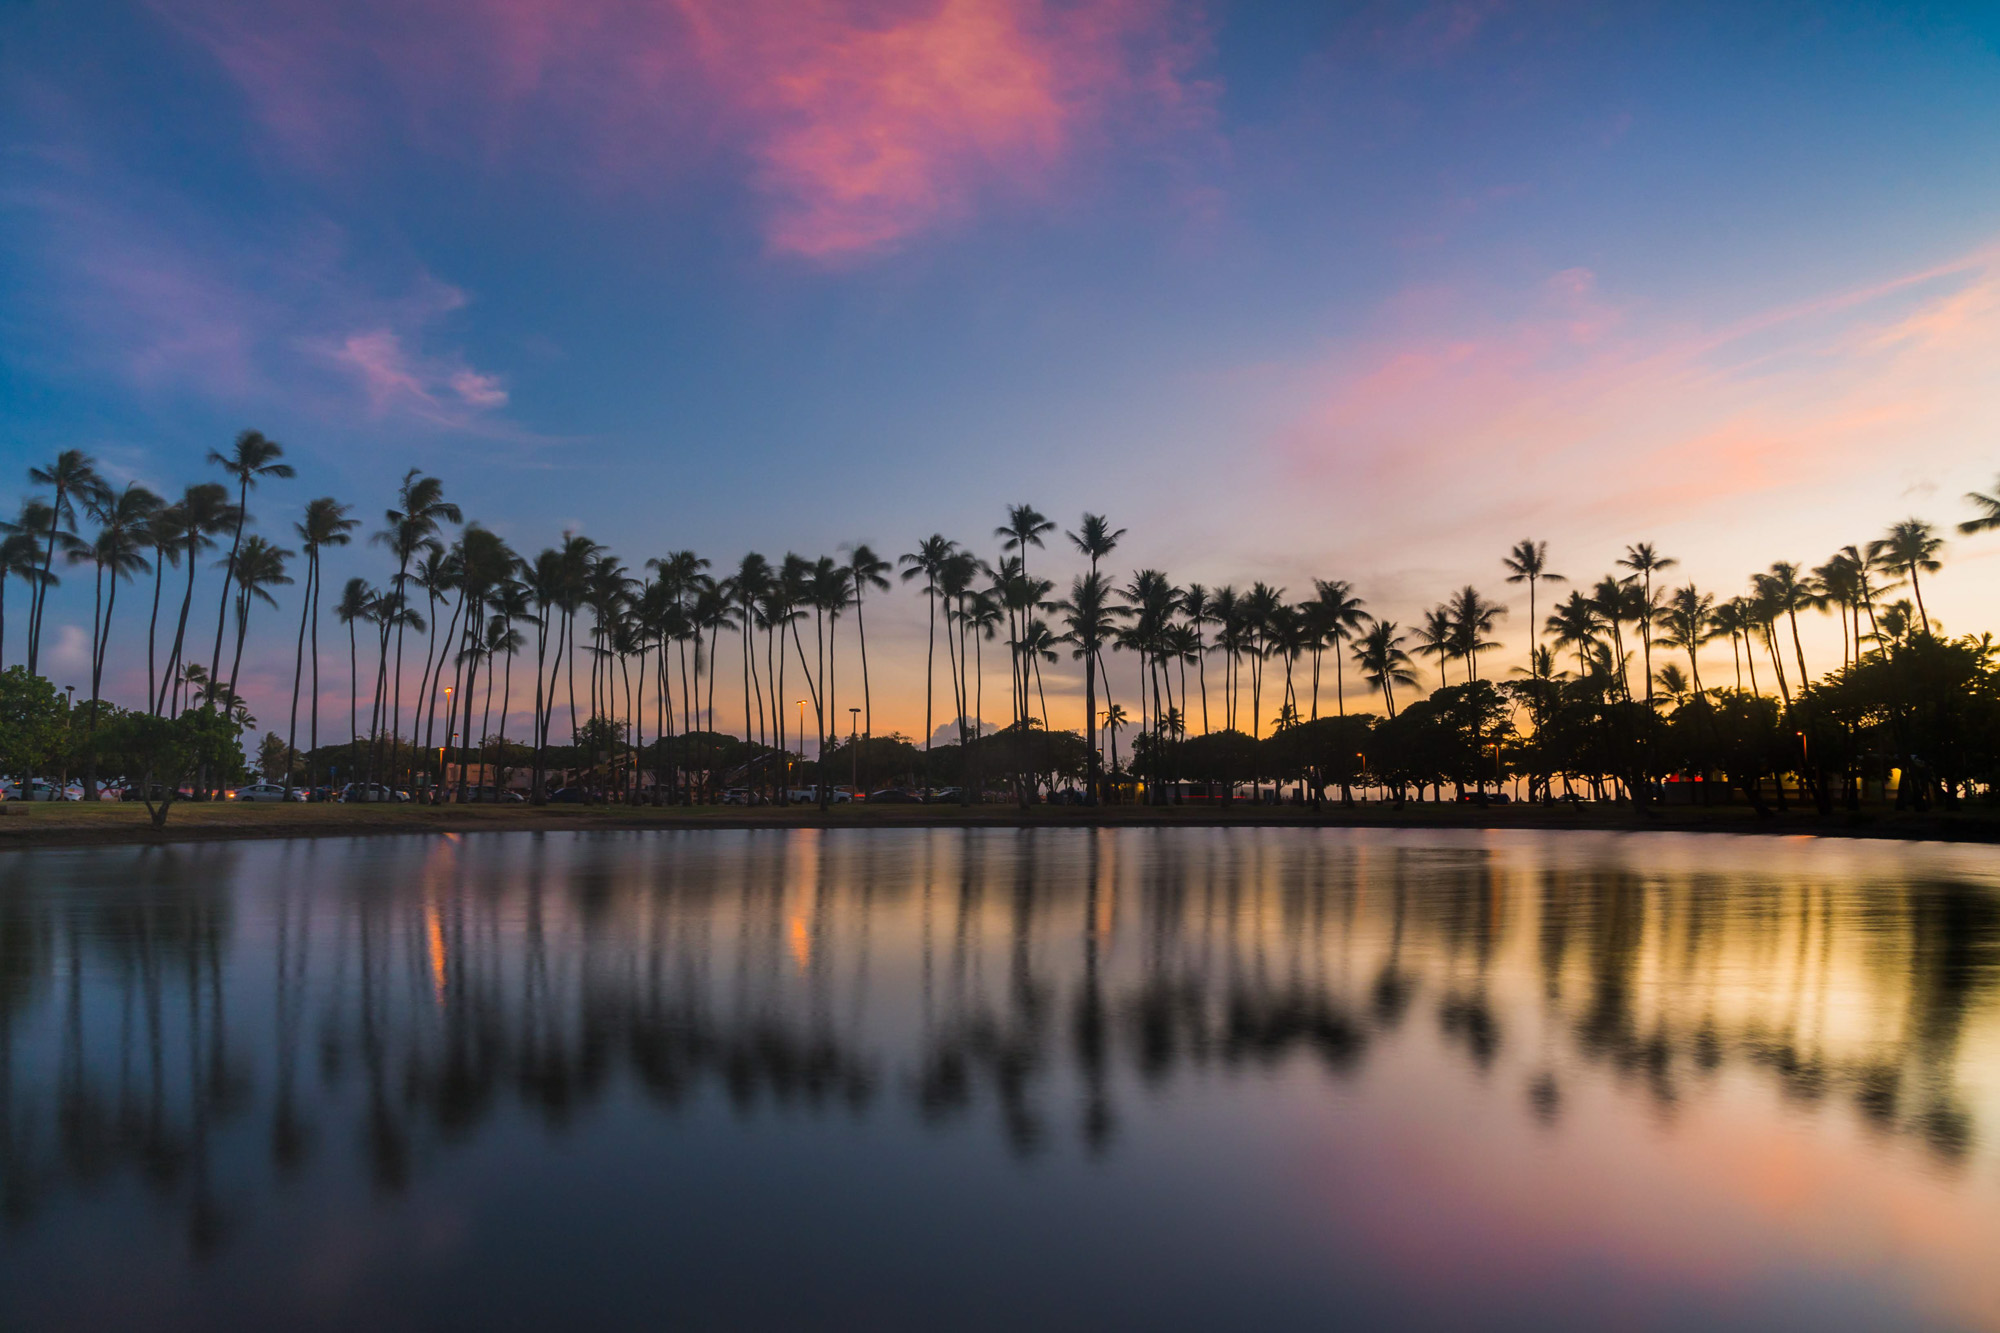 image of a lagoon reflection with palm trees surrounding the lagoon